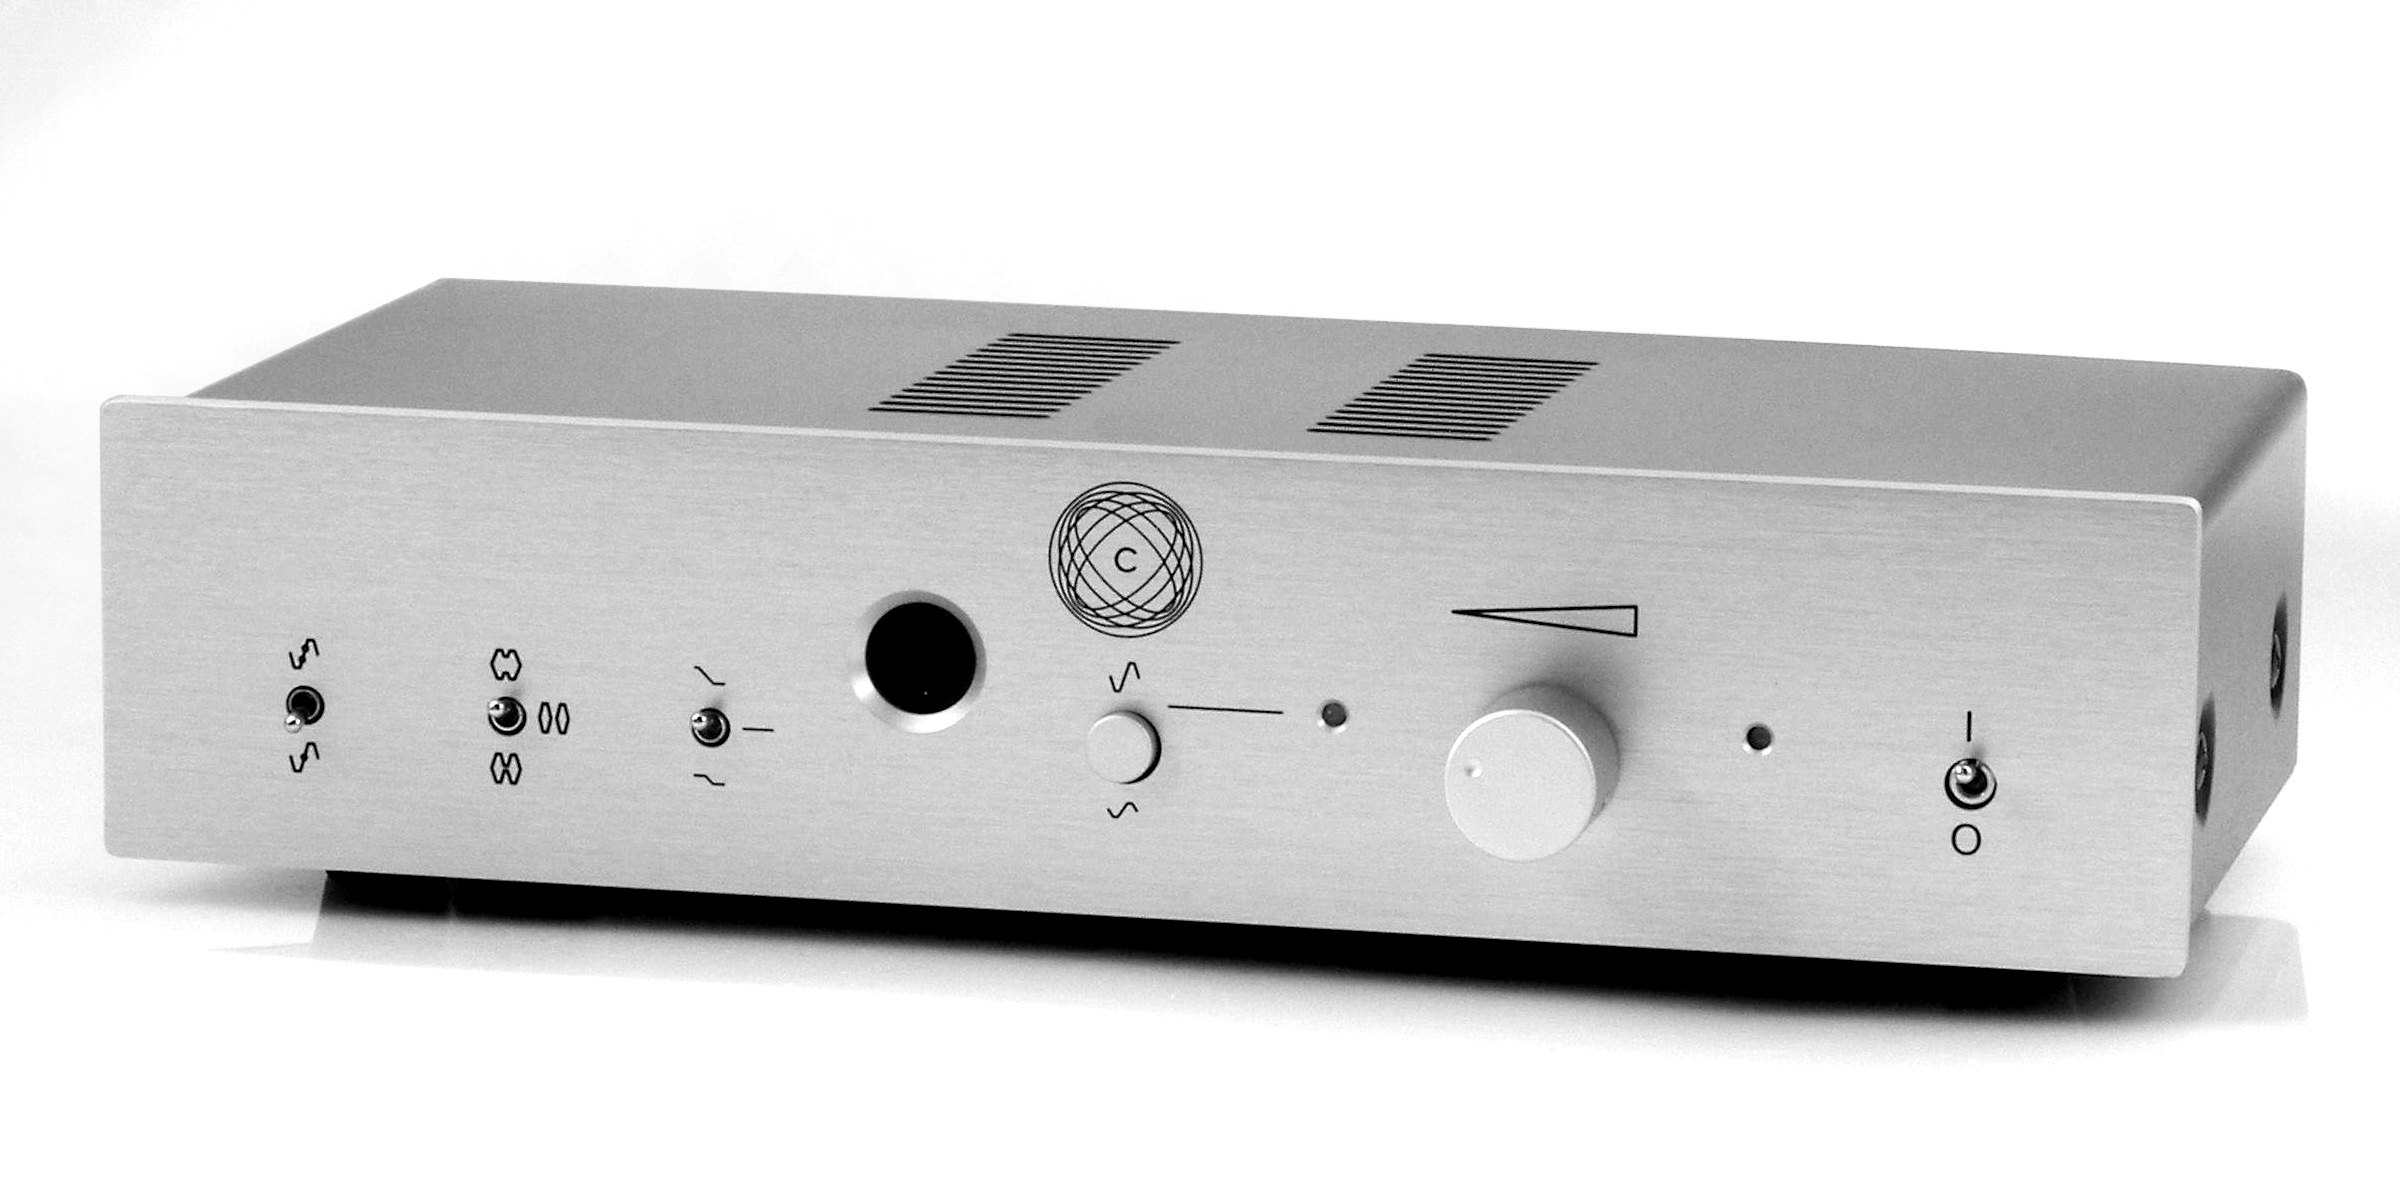 Meier Audio Daccord Corda Classic Review Meridian Mpa Solid State Amplifier The